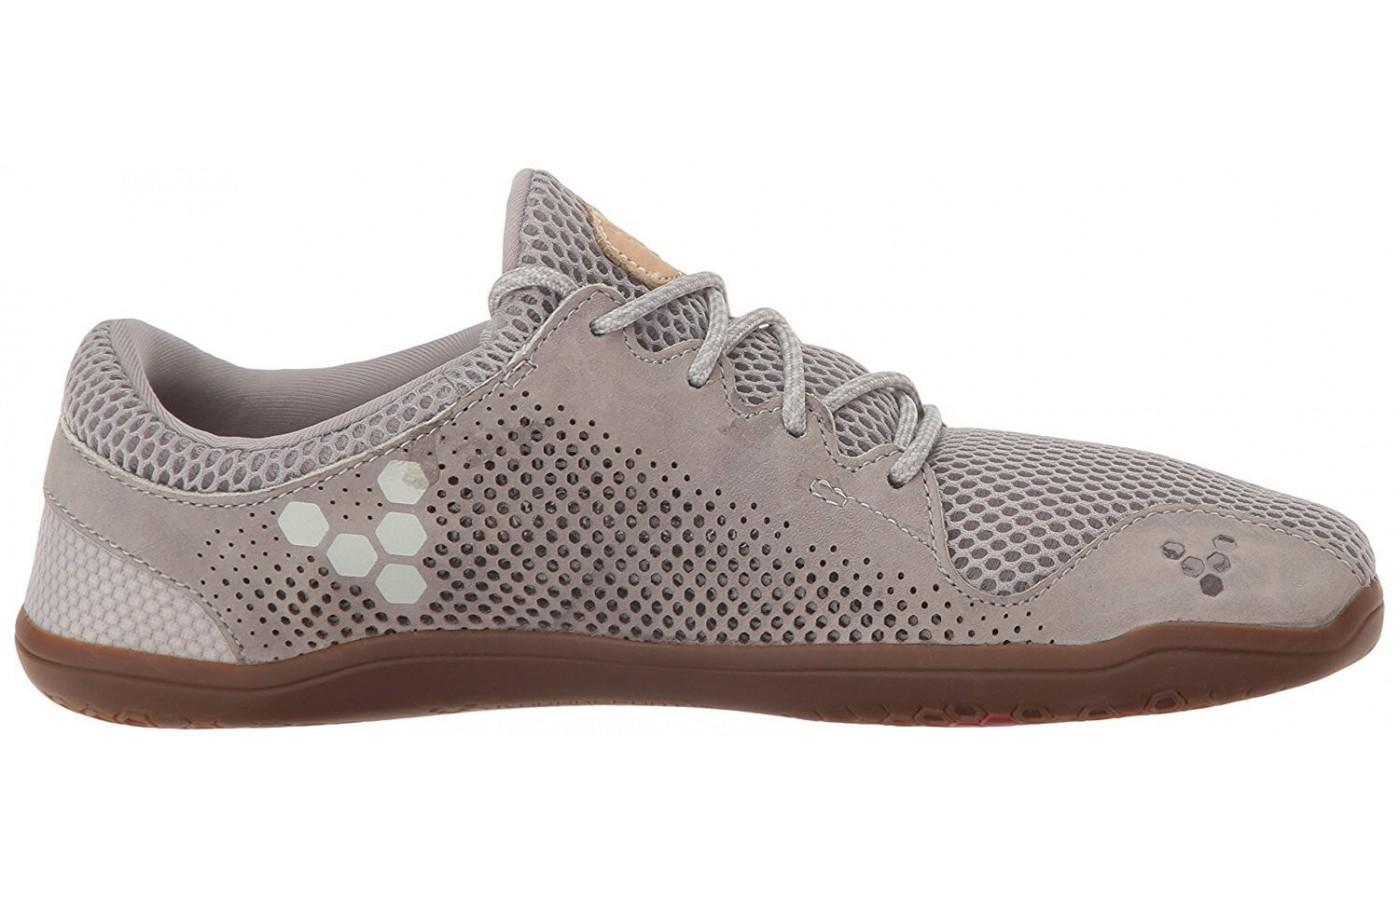 The upper of the Vivobarefoot Primus Trio is very breathable